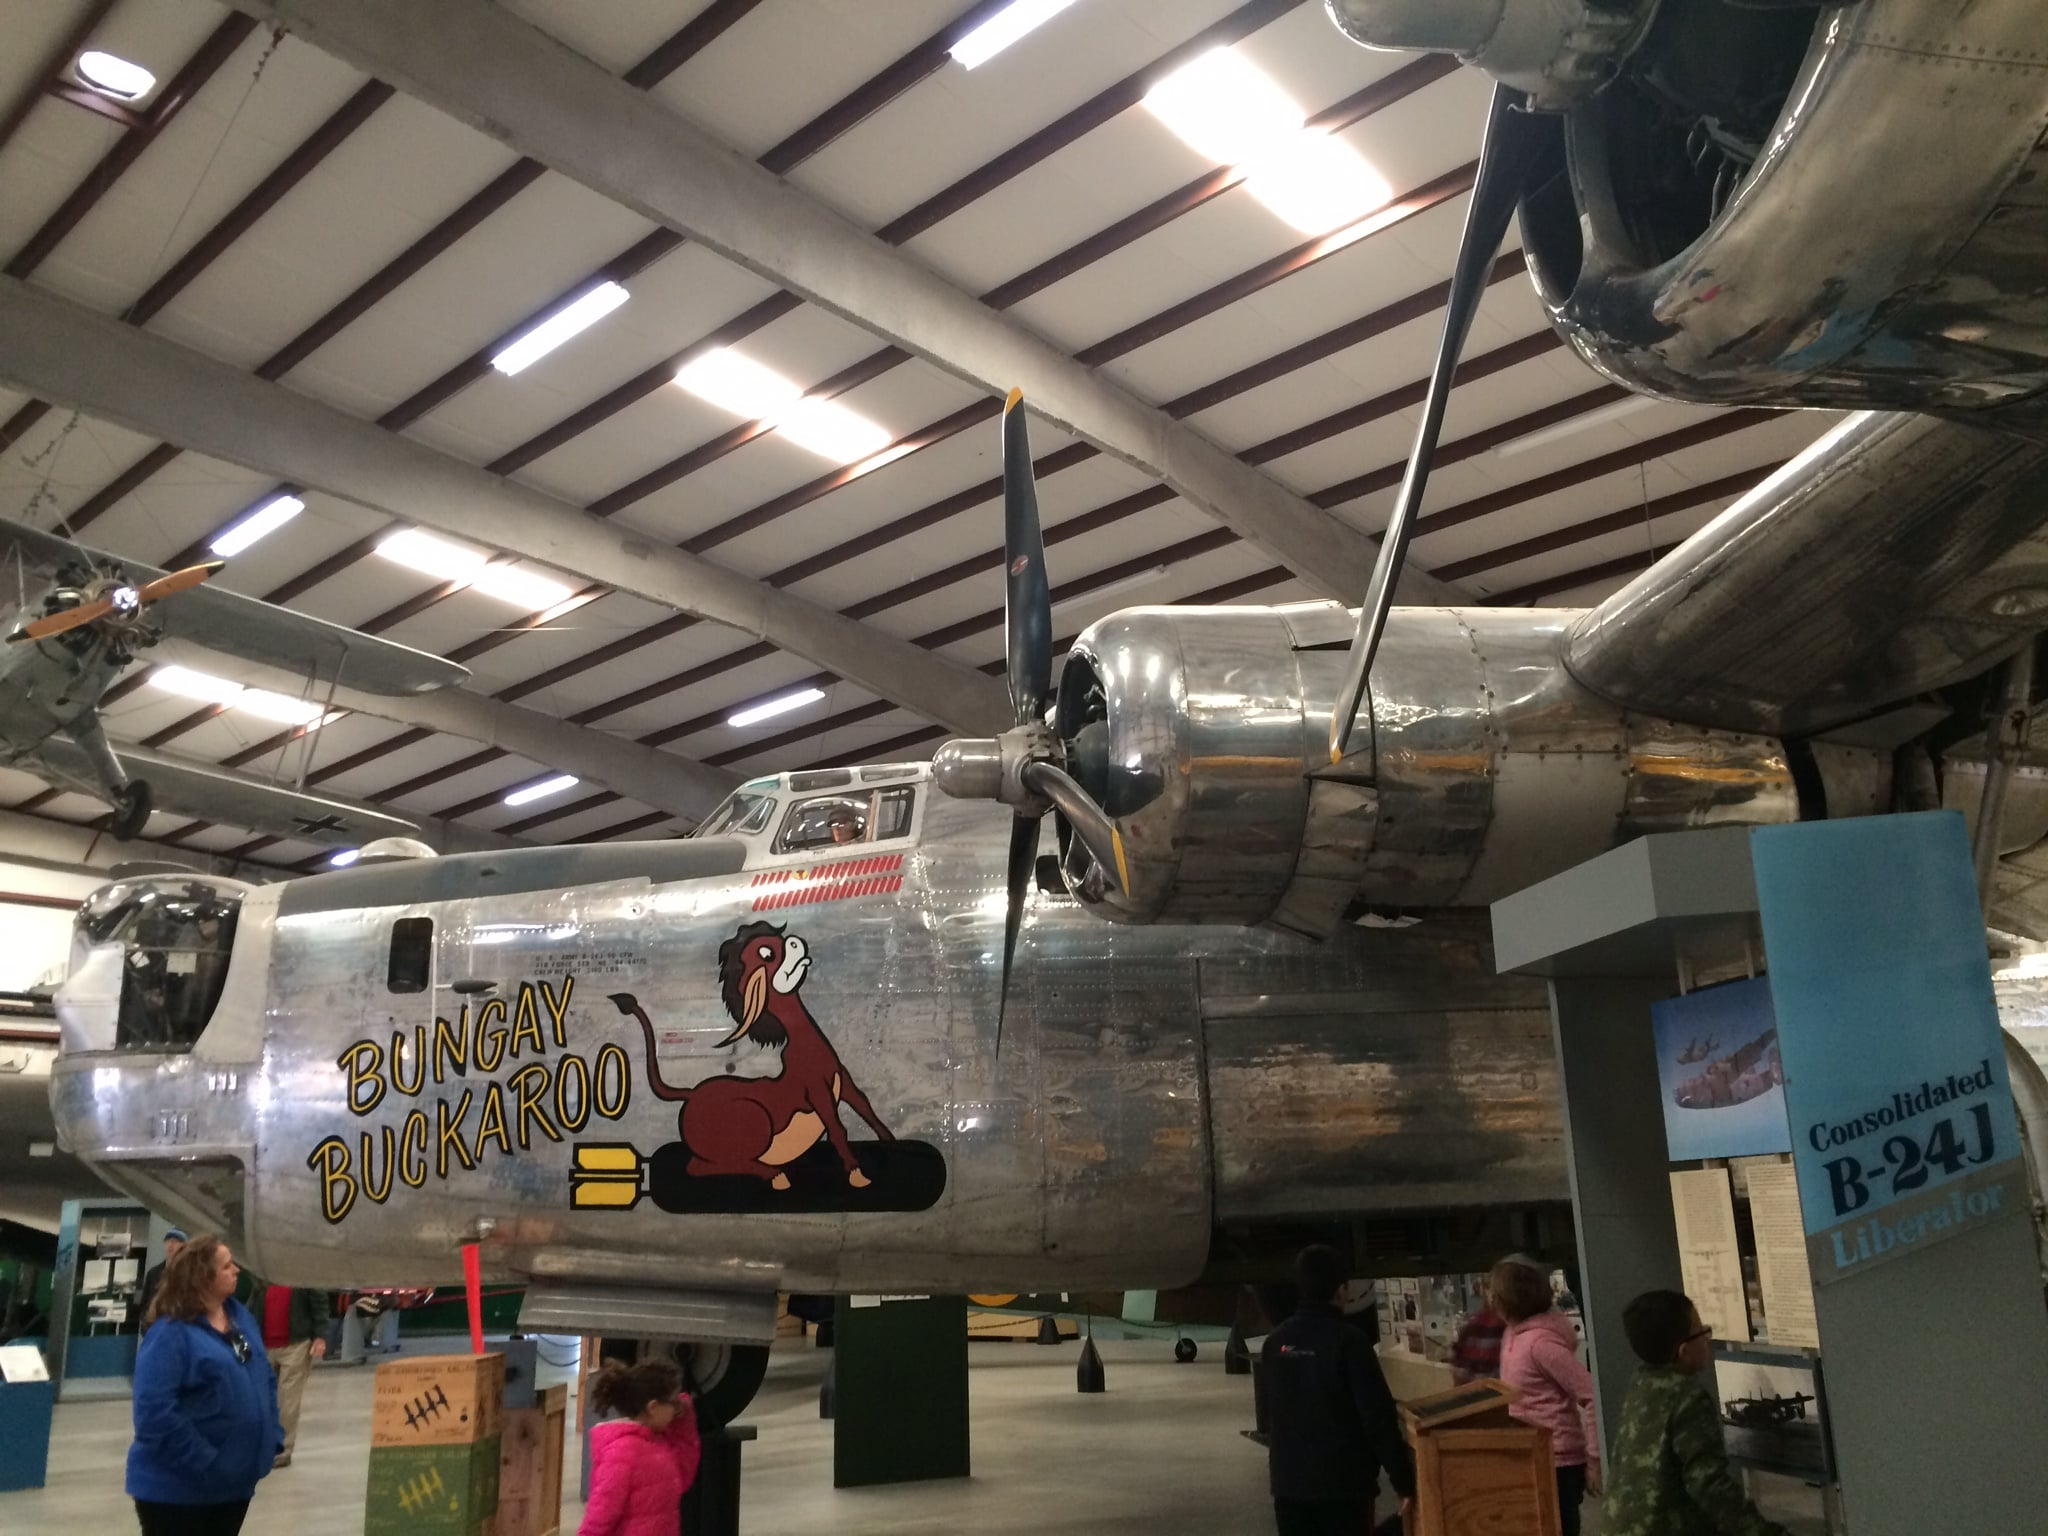 My grandad was a WWII mechanic on B-29s (like this one)